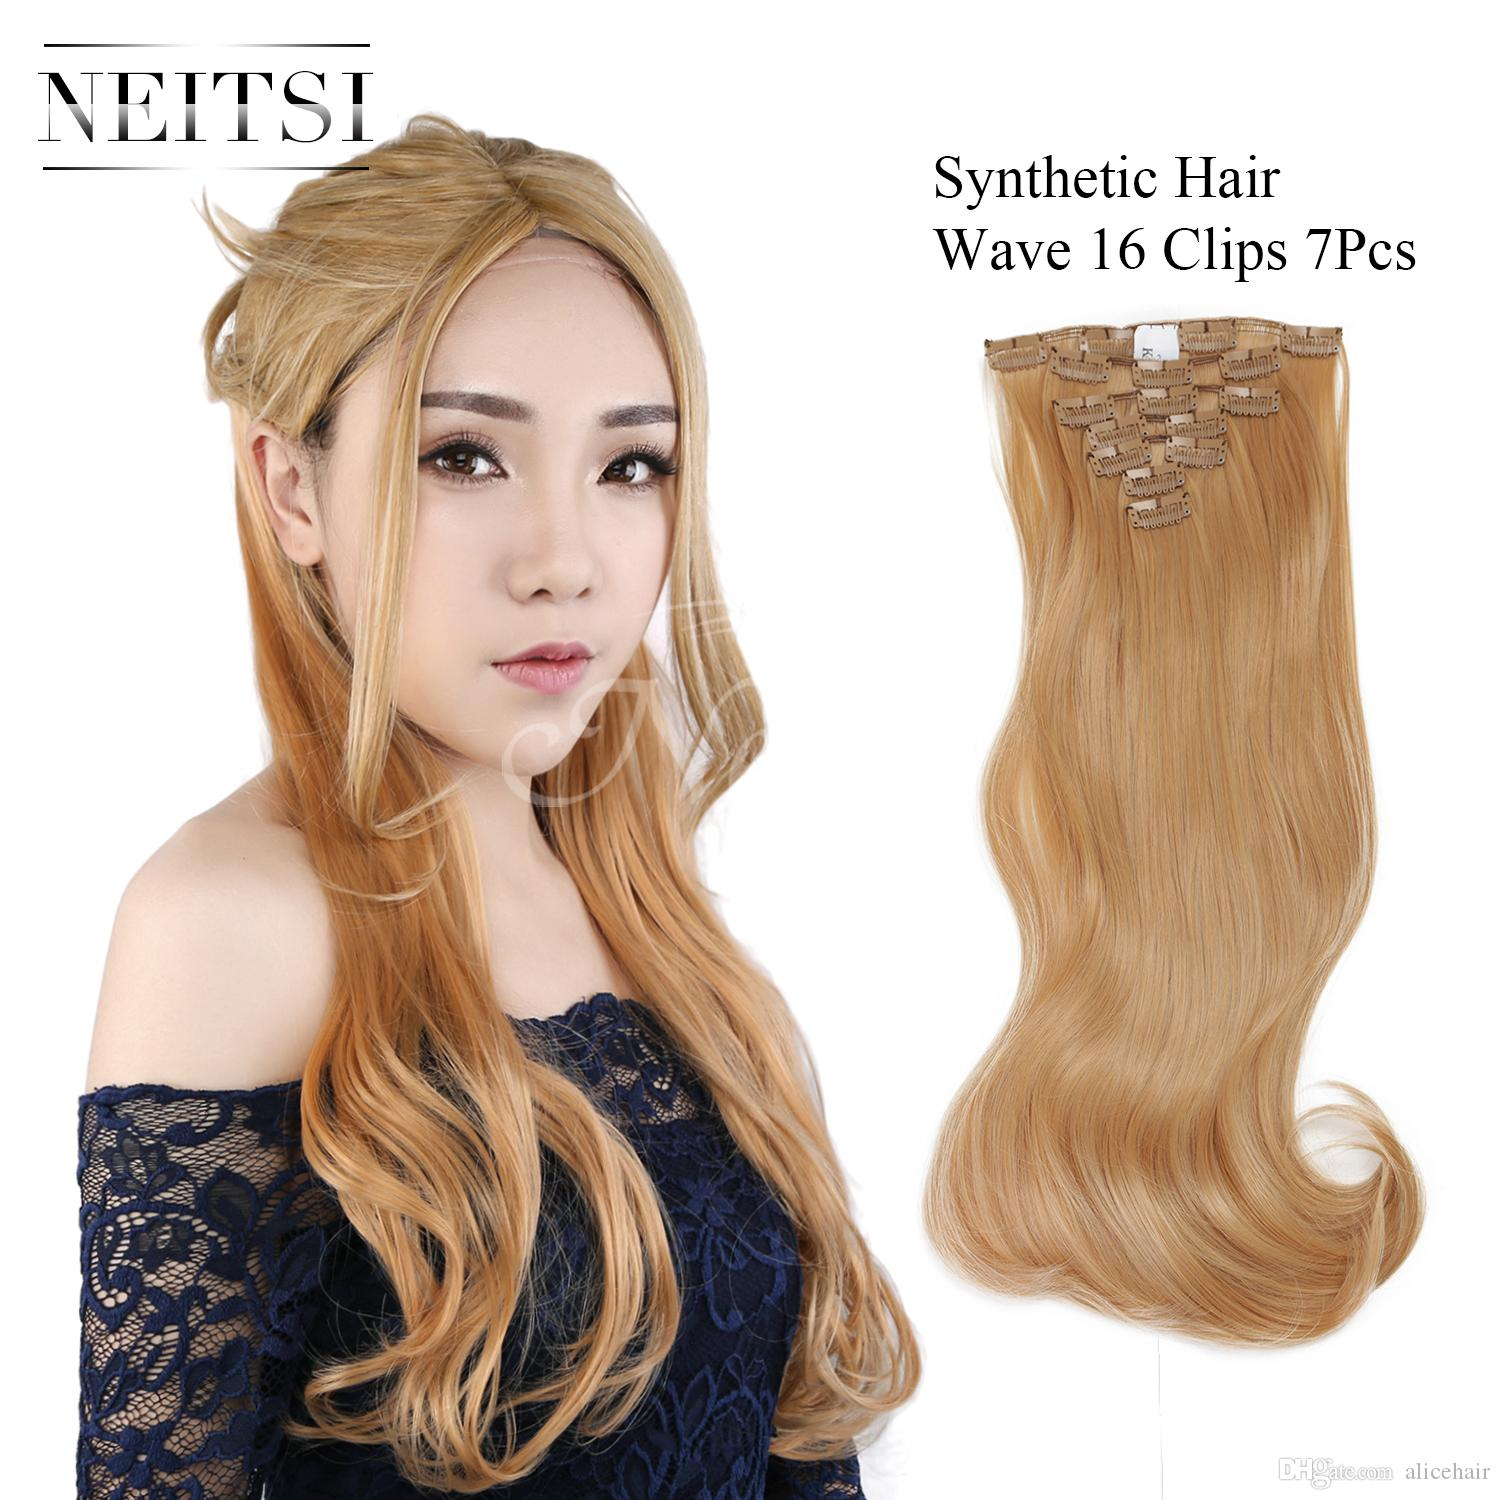 Neiti 20 Wavy Clip In Hair Extension Body Wave 140gfull Head Curly